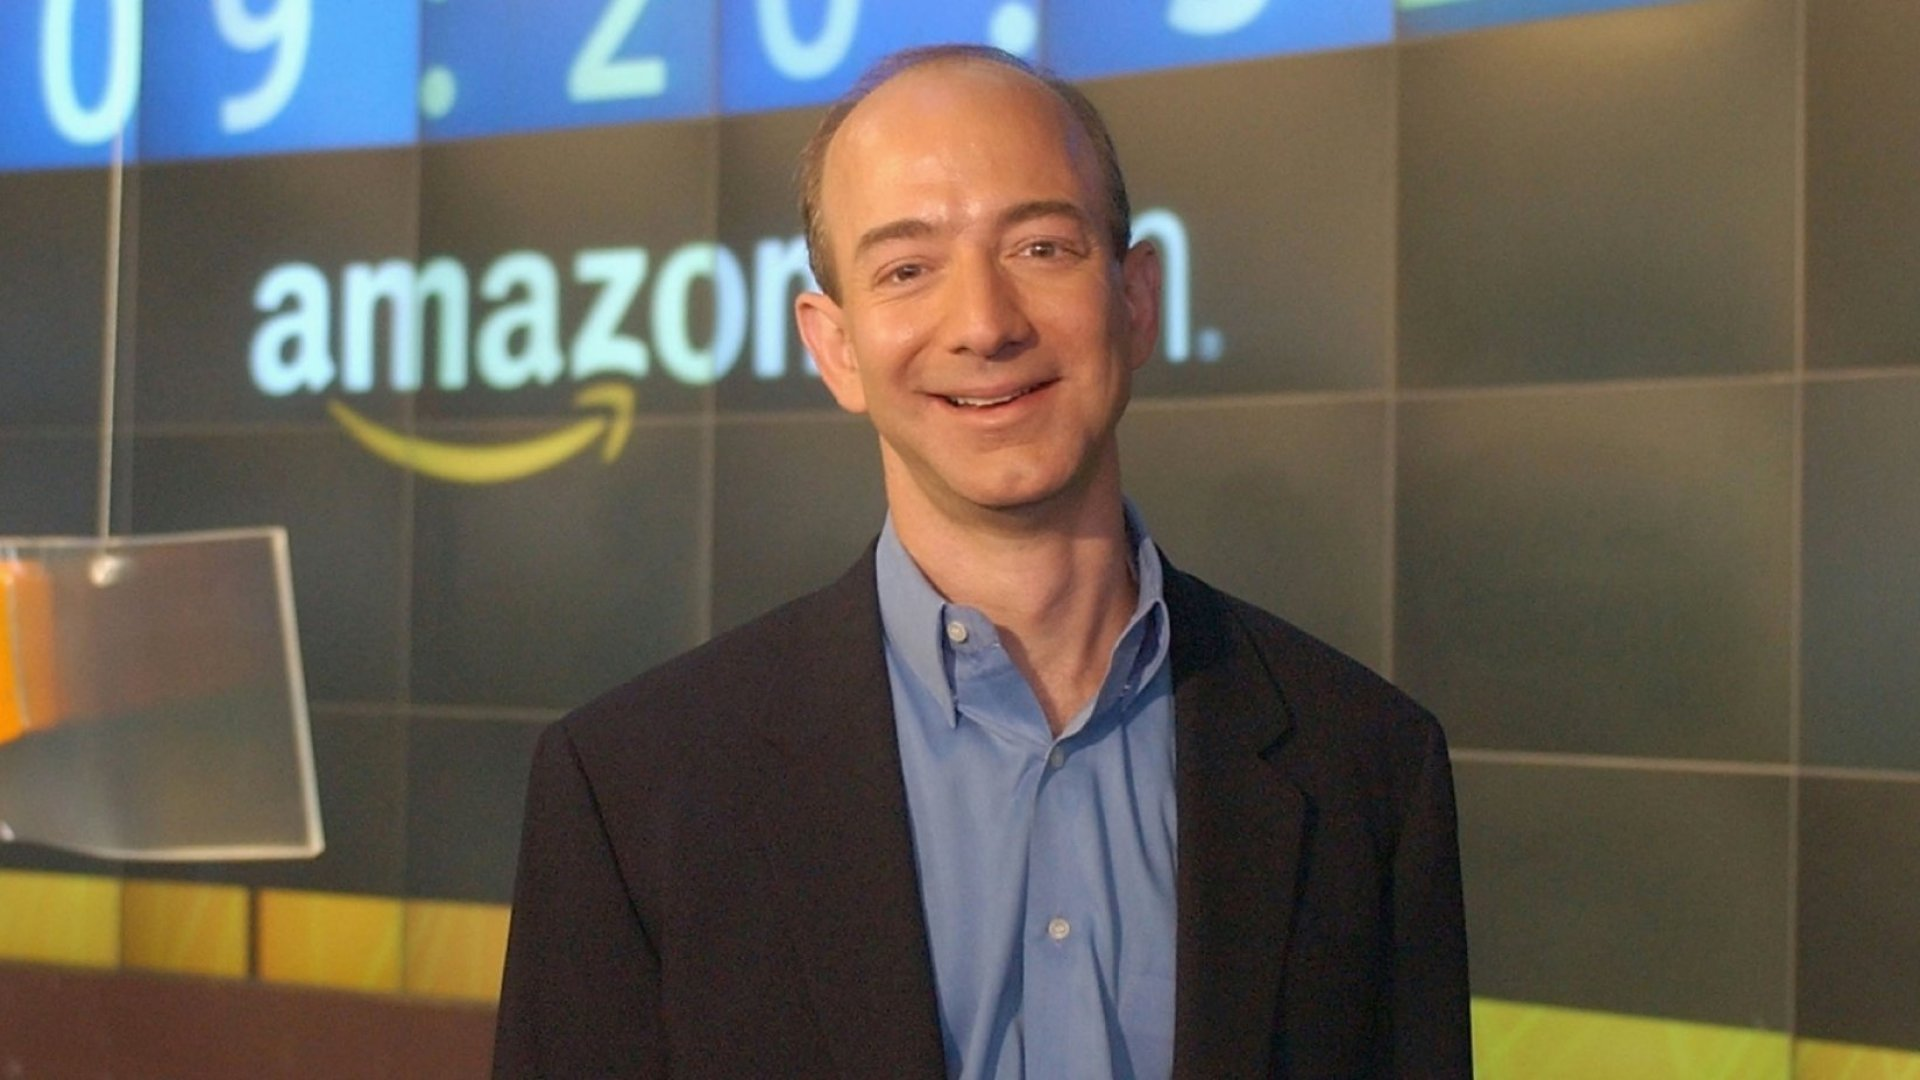 This Original Letter From Jeff Bezos to Amazon Shareholders Teaches Some Extraordinary Lessons in Leadership